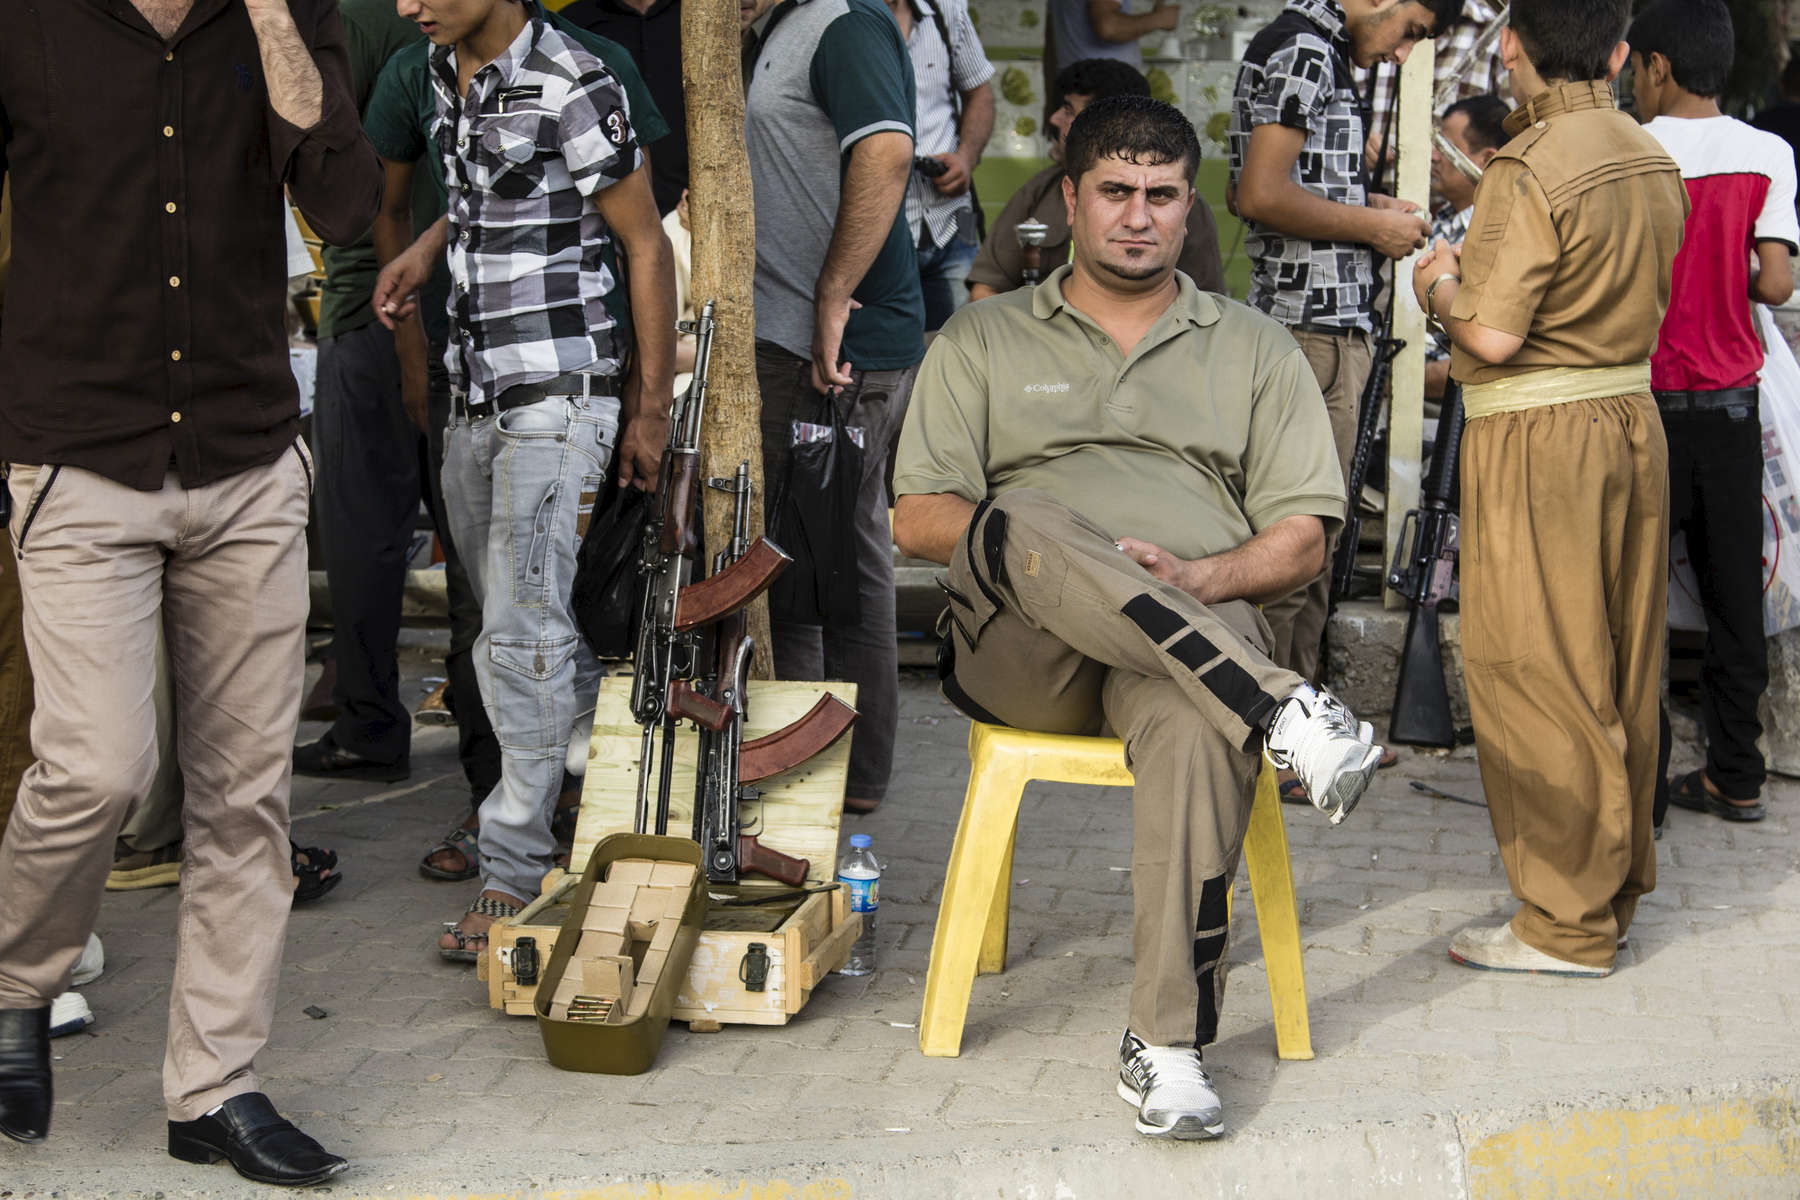 25/07/2014. Kirkuk, Iraq. A gun seller sits next to two Kalashnikov (AKMS) assault rifles in the Gun Market of the Kirkuk Bazaar, Iraq. Guns sellers don't sell guns to Arab people, because they consider them as an enemy.